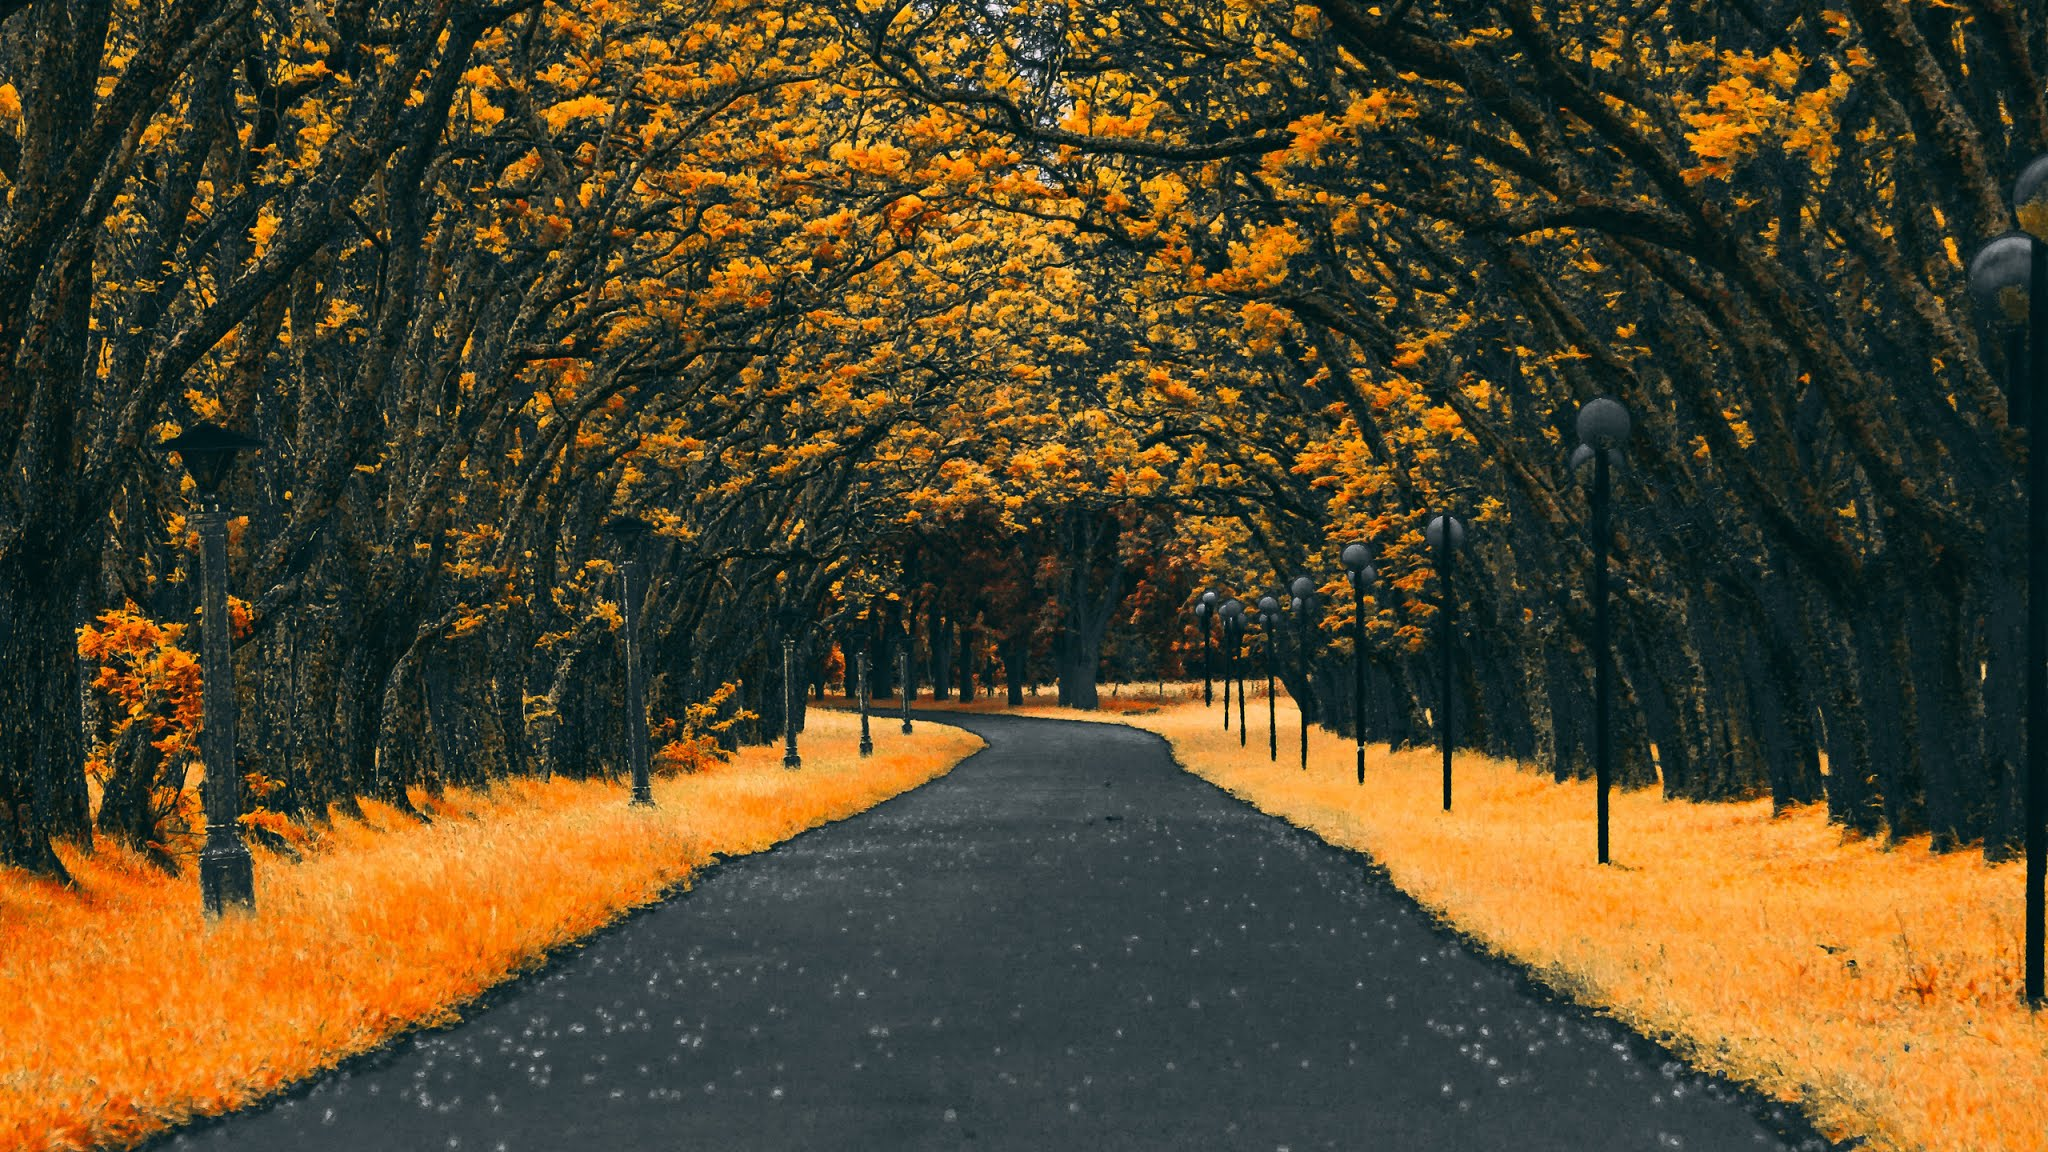 Autumn Road Nature 4k Wallpaper